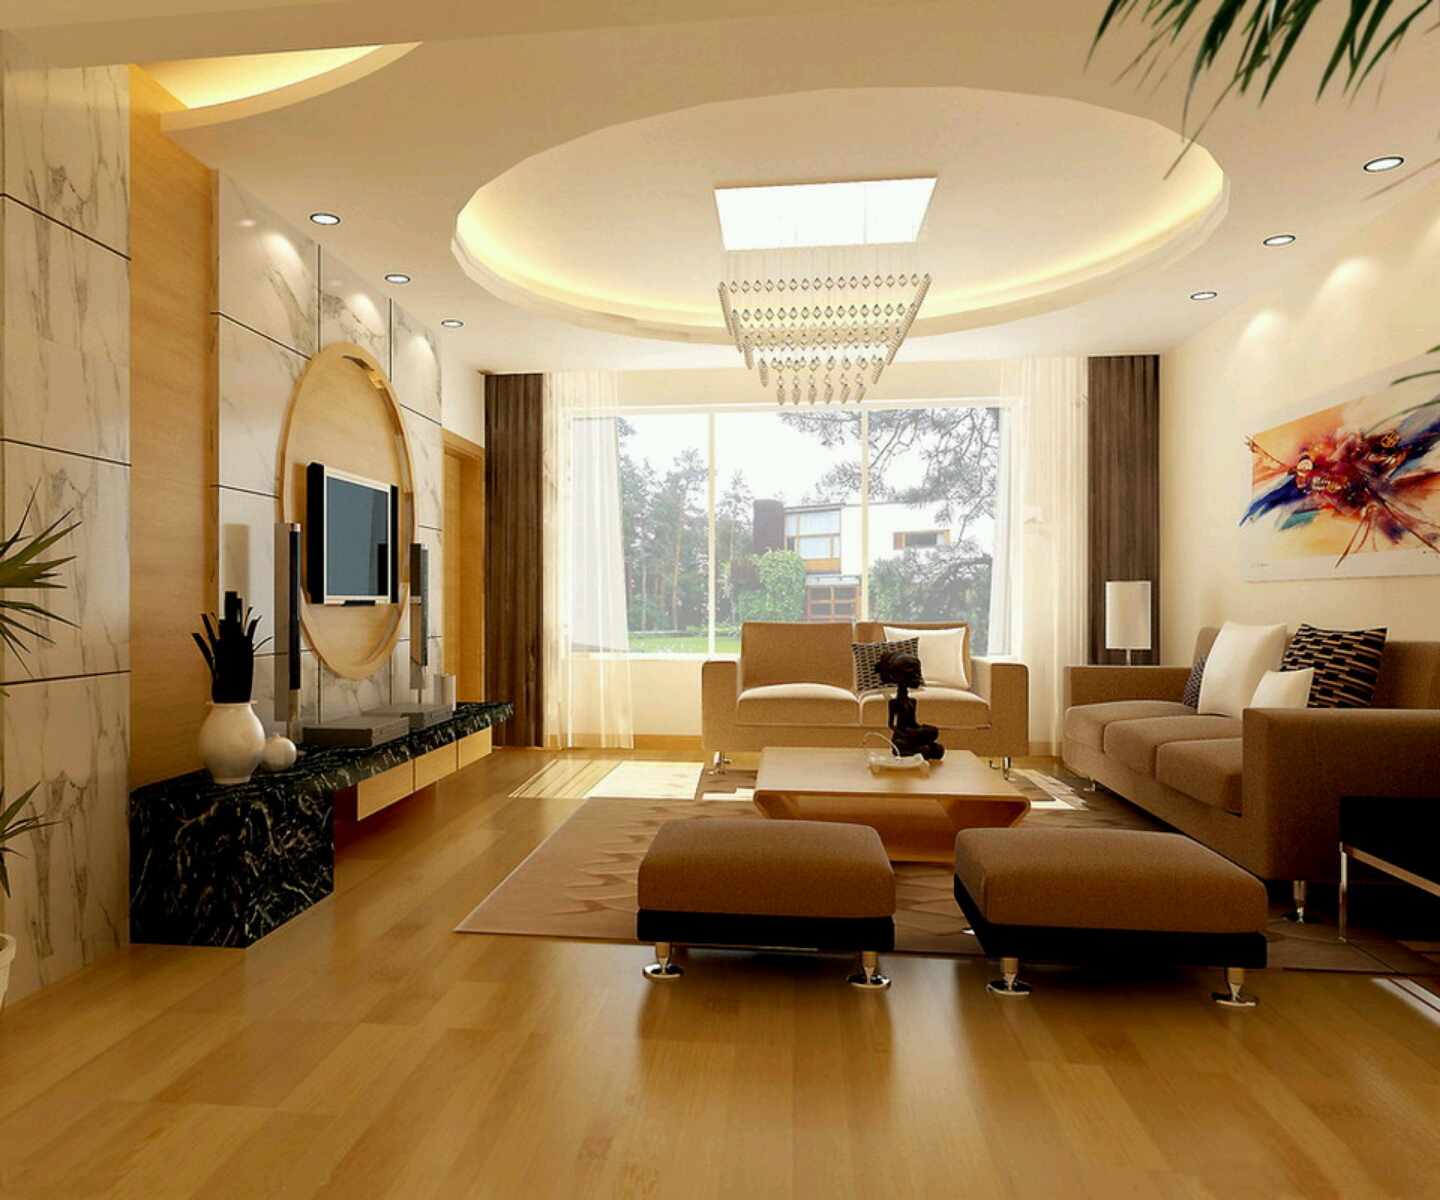 Modern interior decoration living rooms ceiling designs for Latest interior design